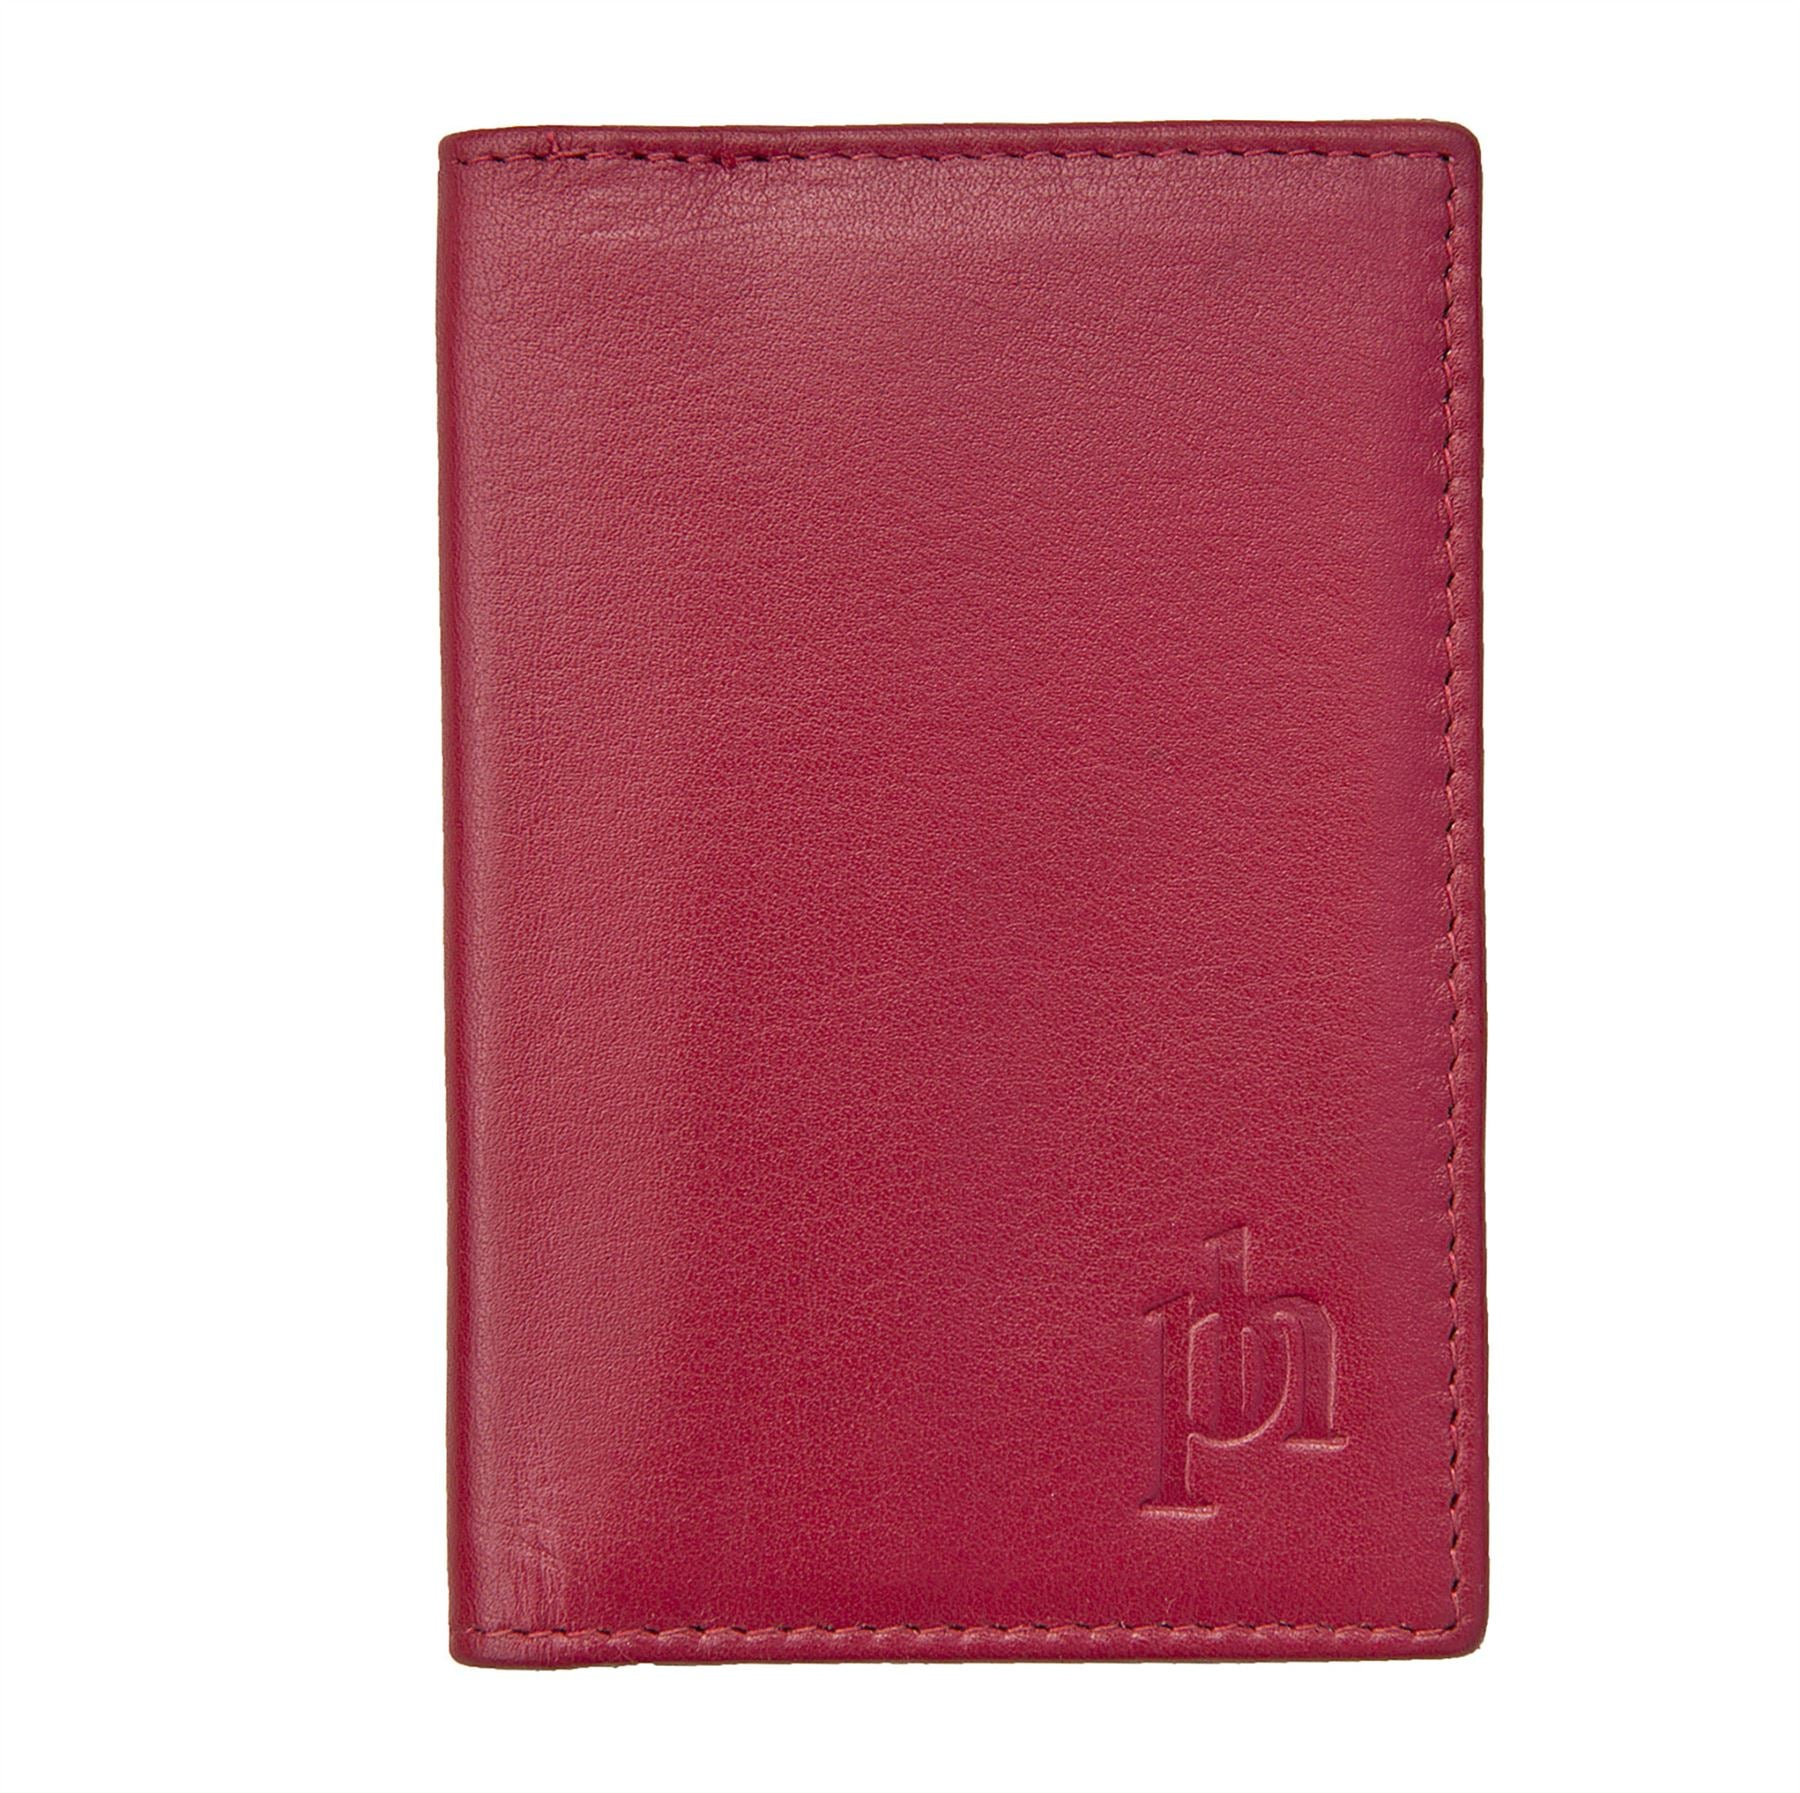 Leather Travelcard / Oyster Card Holder - 710